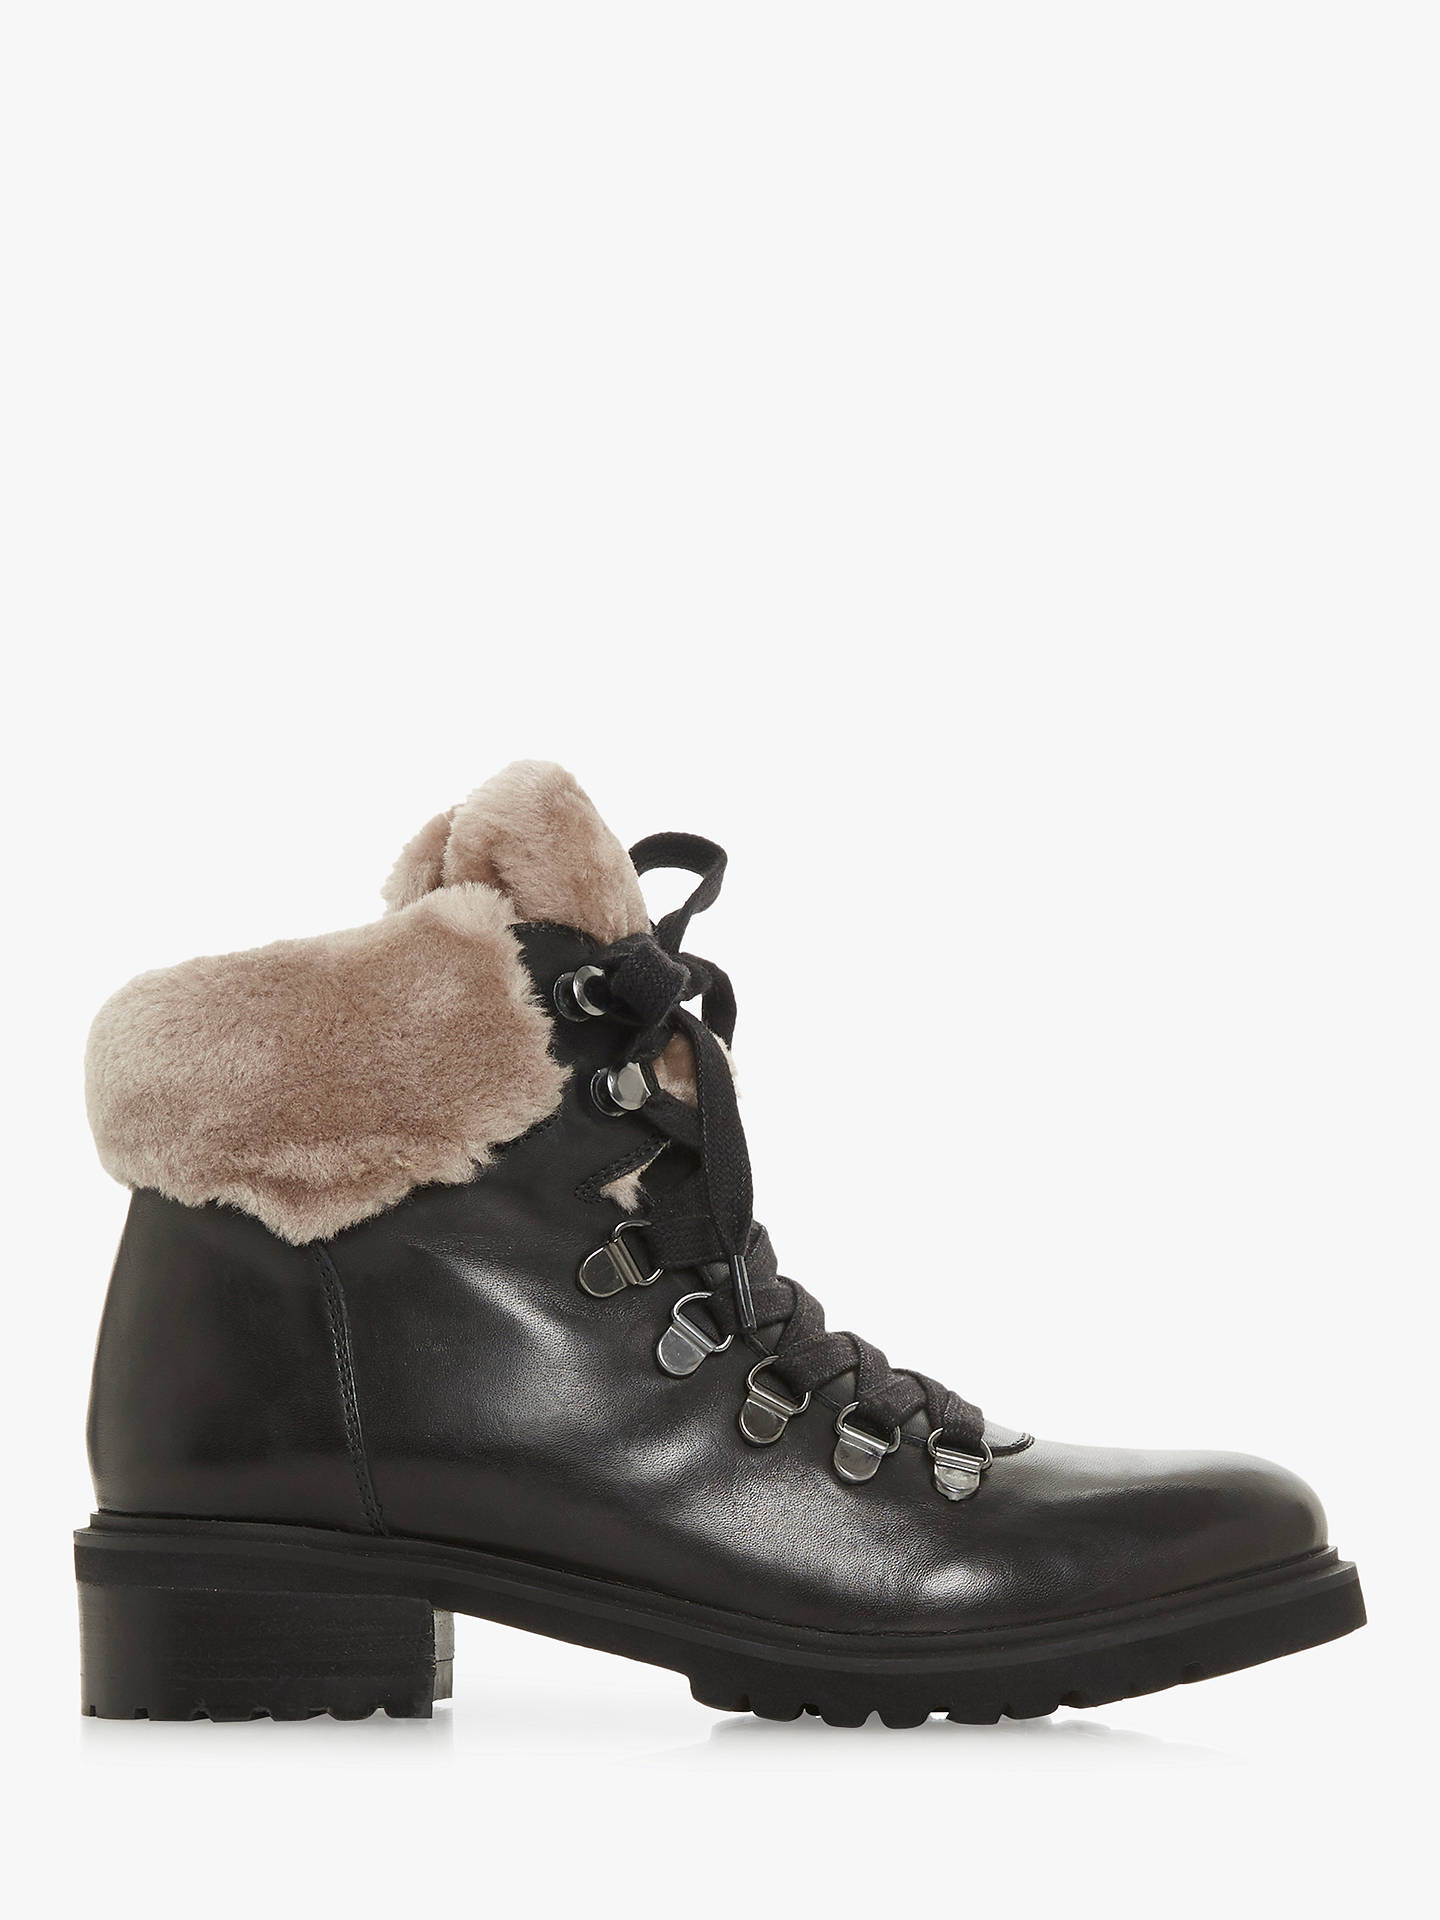 badb6275e0c Steve Madden Tree SM Faux Fur Collar Calf Boots, Black Leather at ...